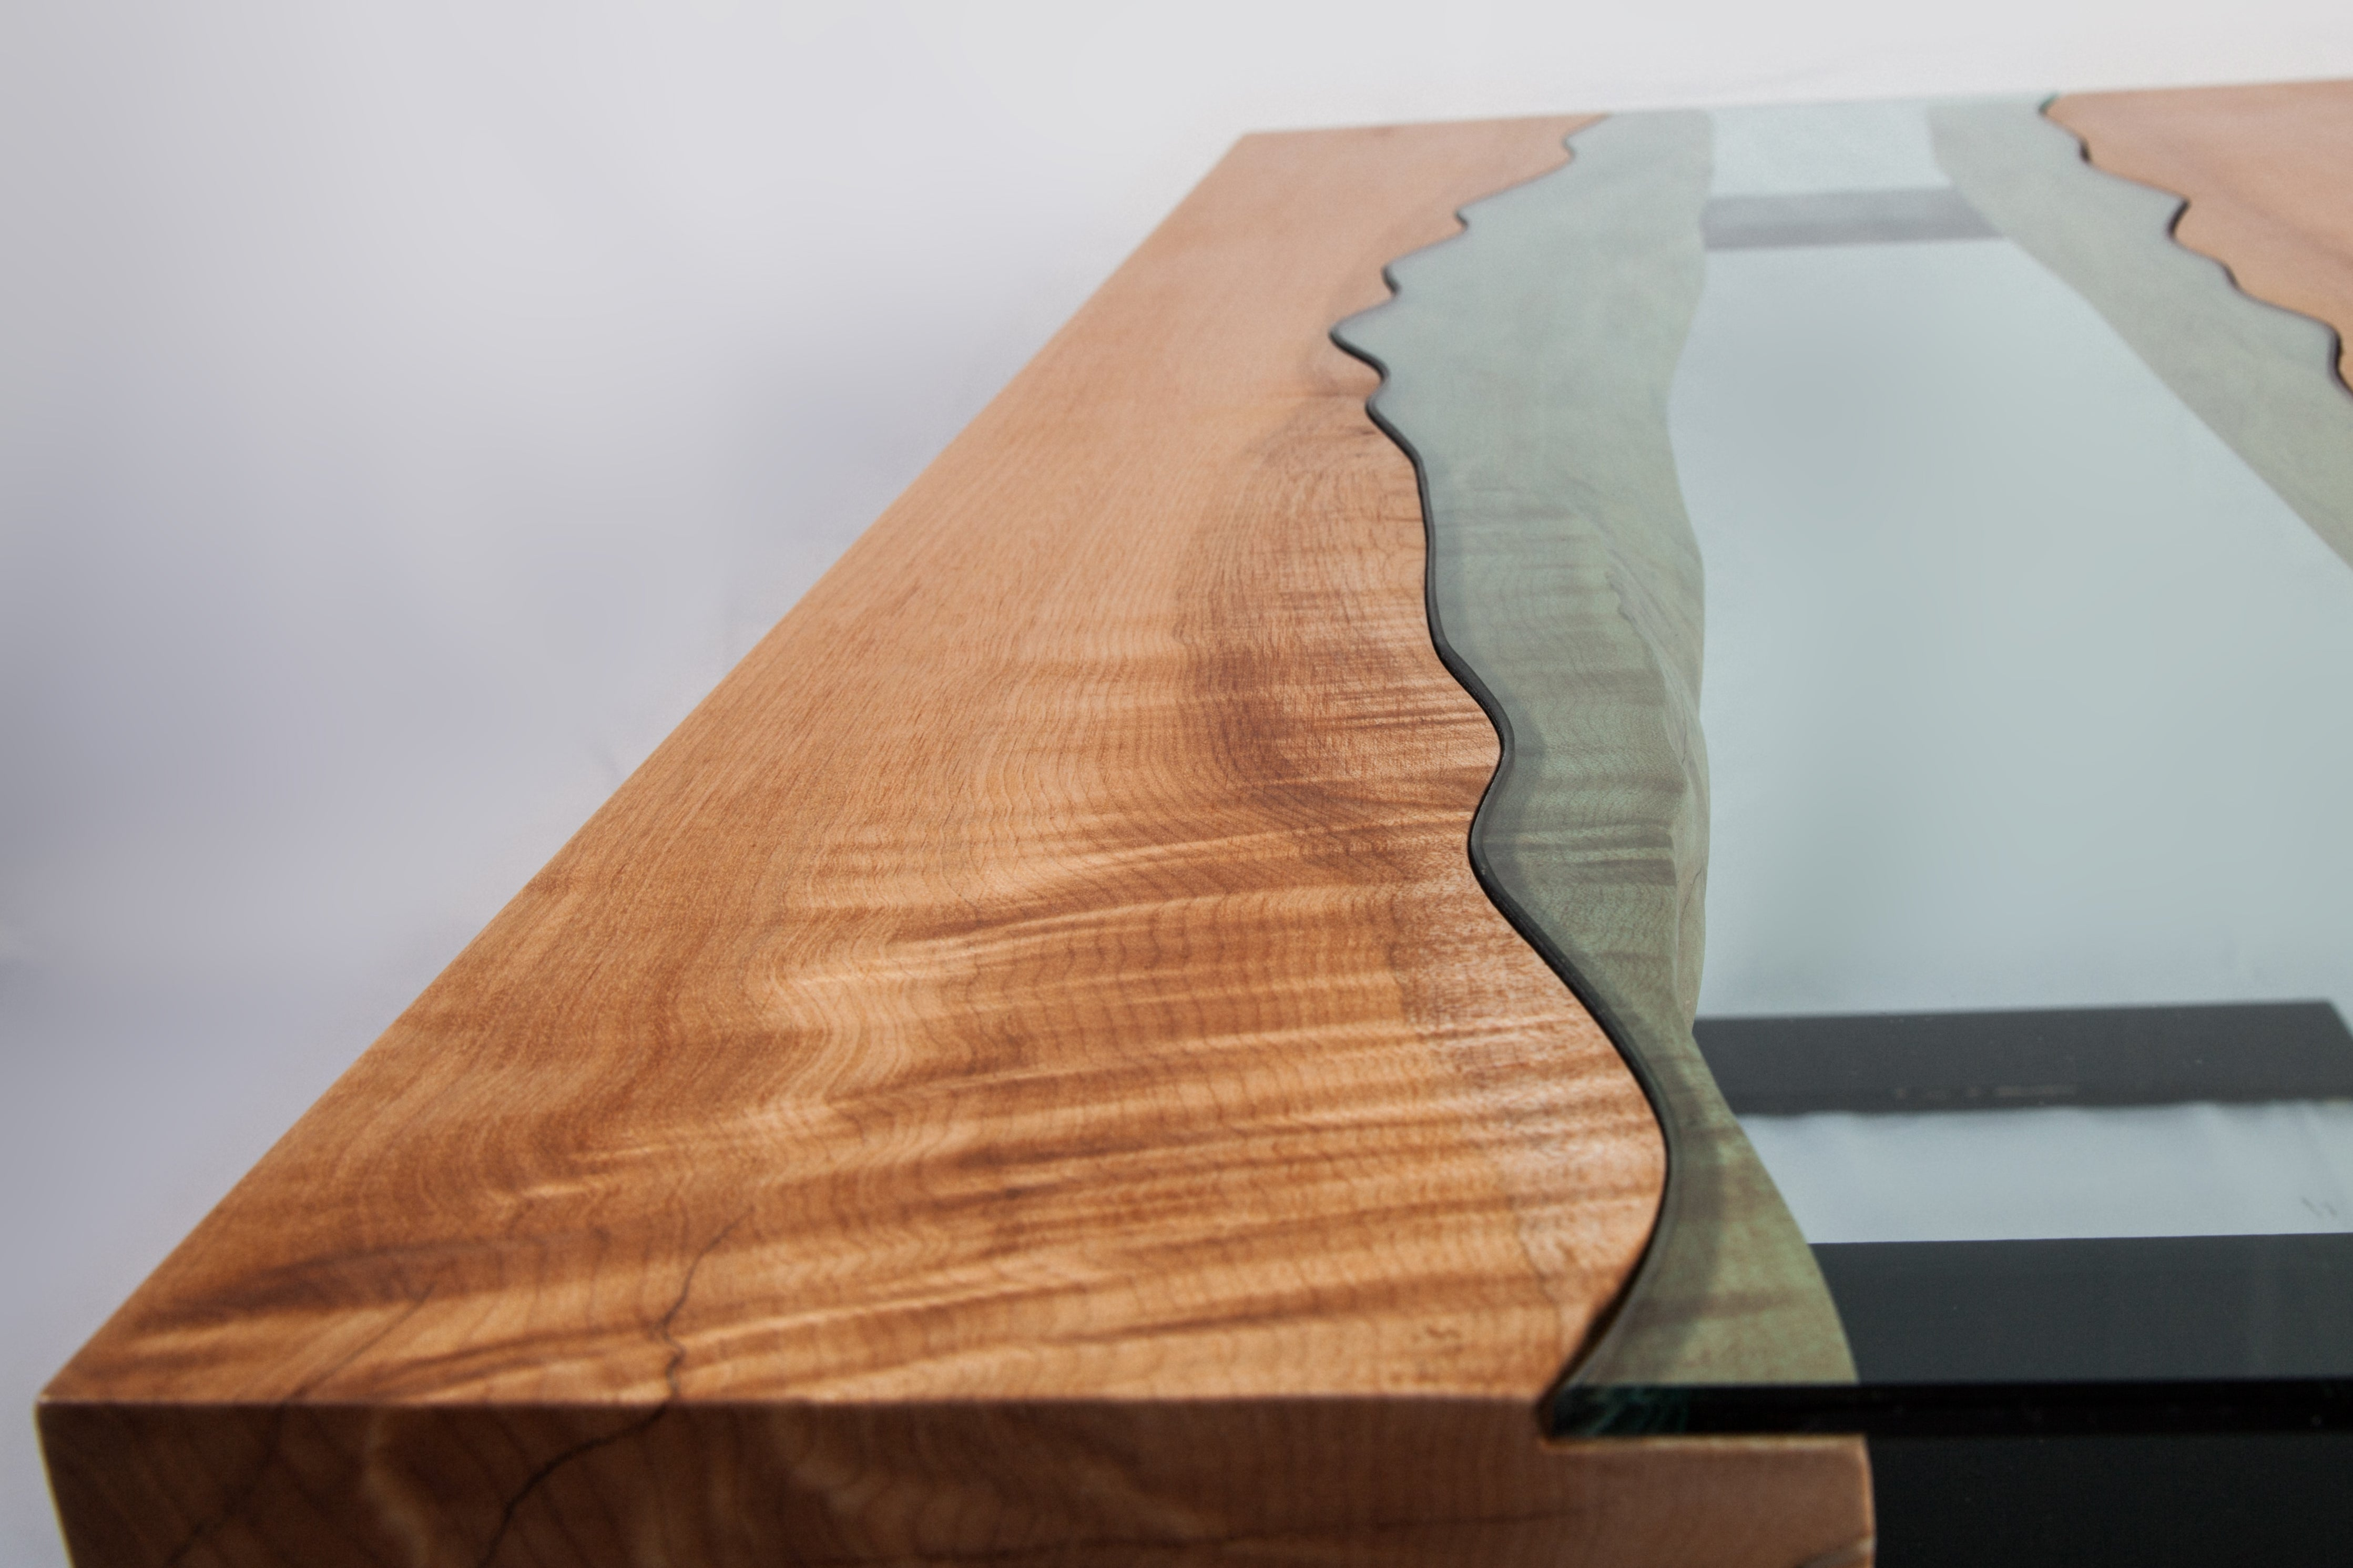 Handmade river coffee table with a big leaf maple top, river glass centre, and black powder coated steel legs